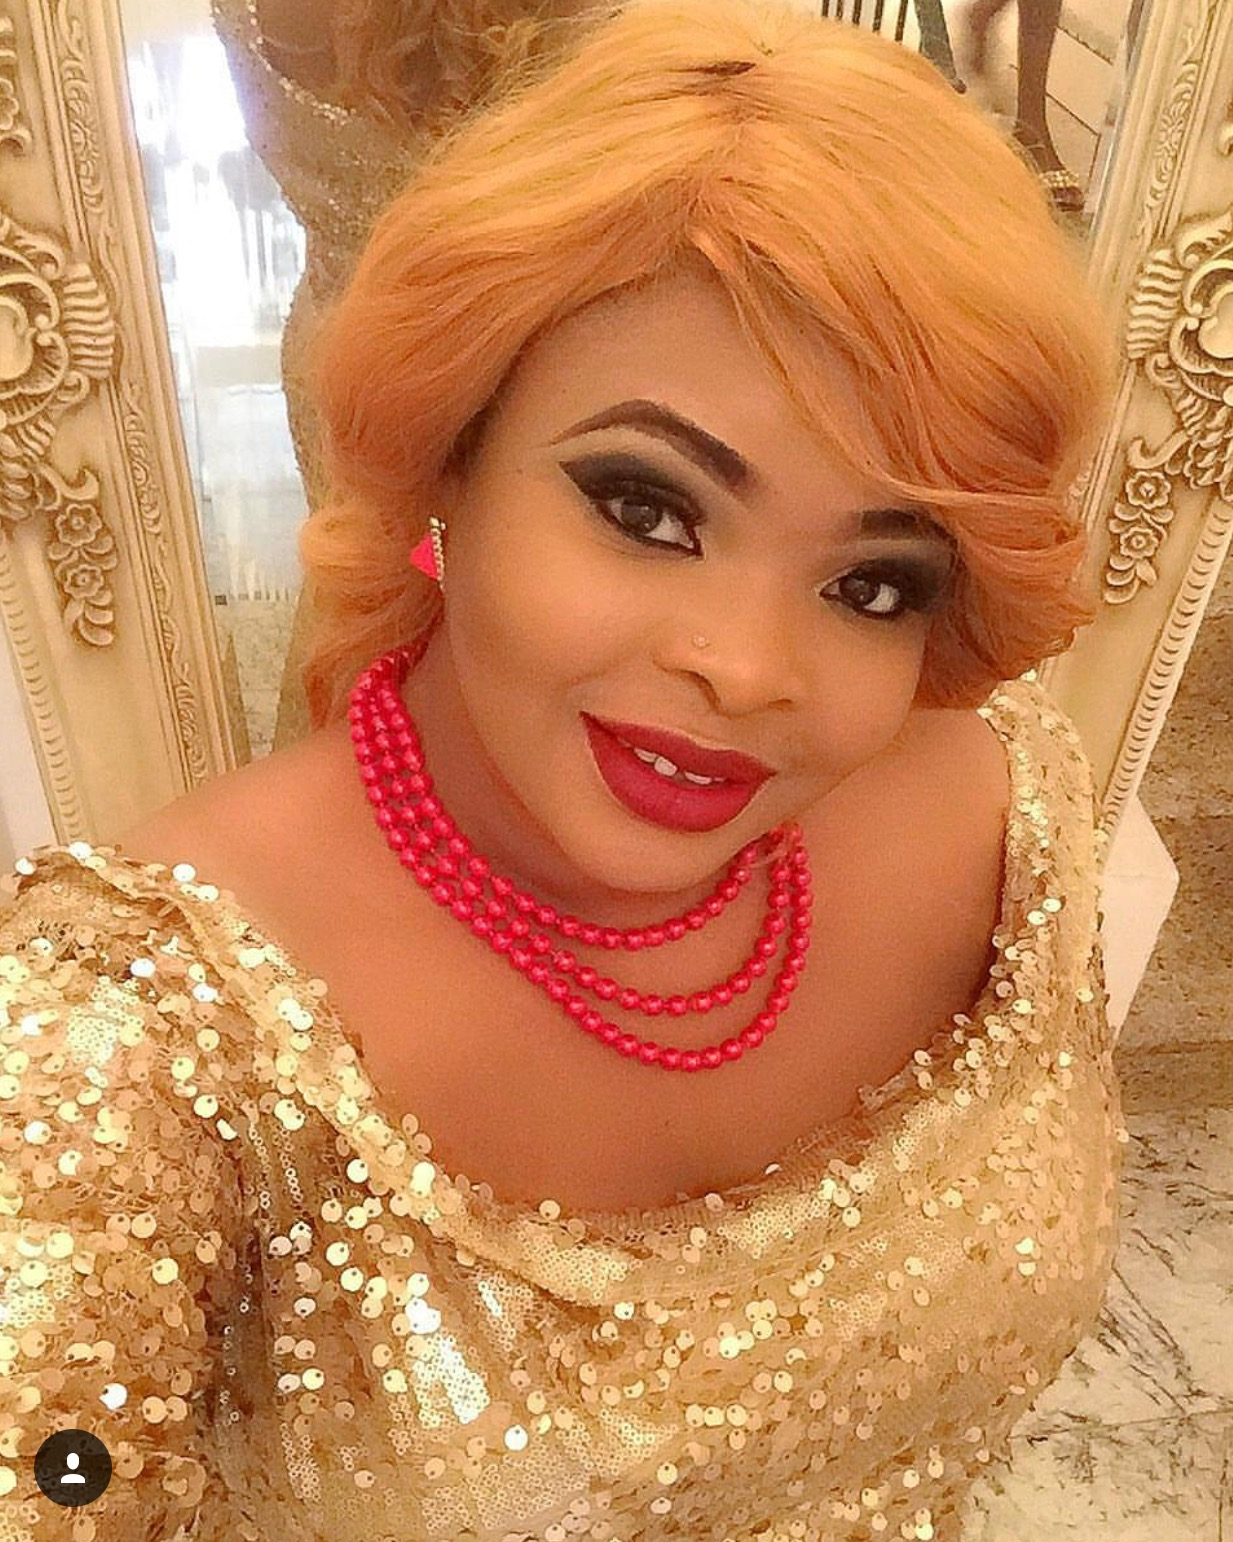 From A Bloggers Desk: Dayo Amusa Bleached Her Skin, So What?